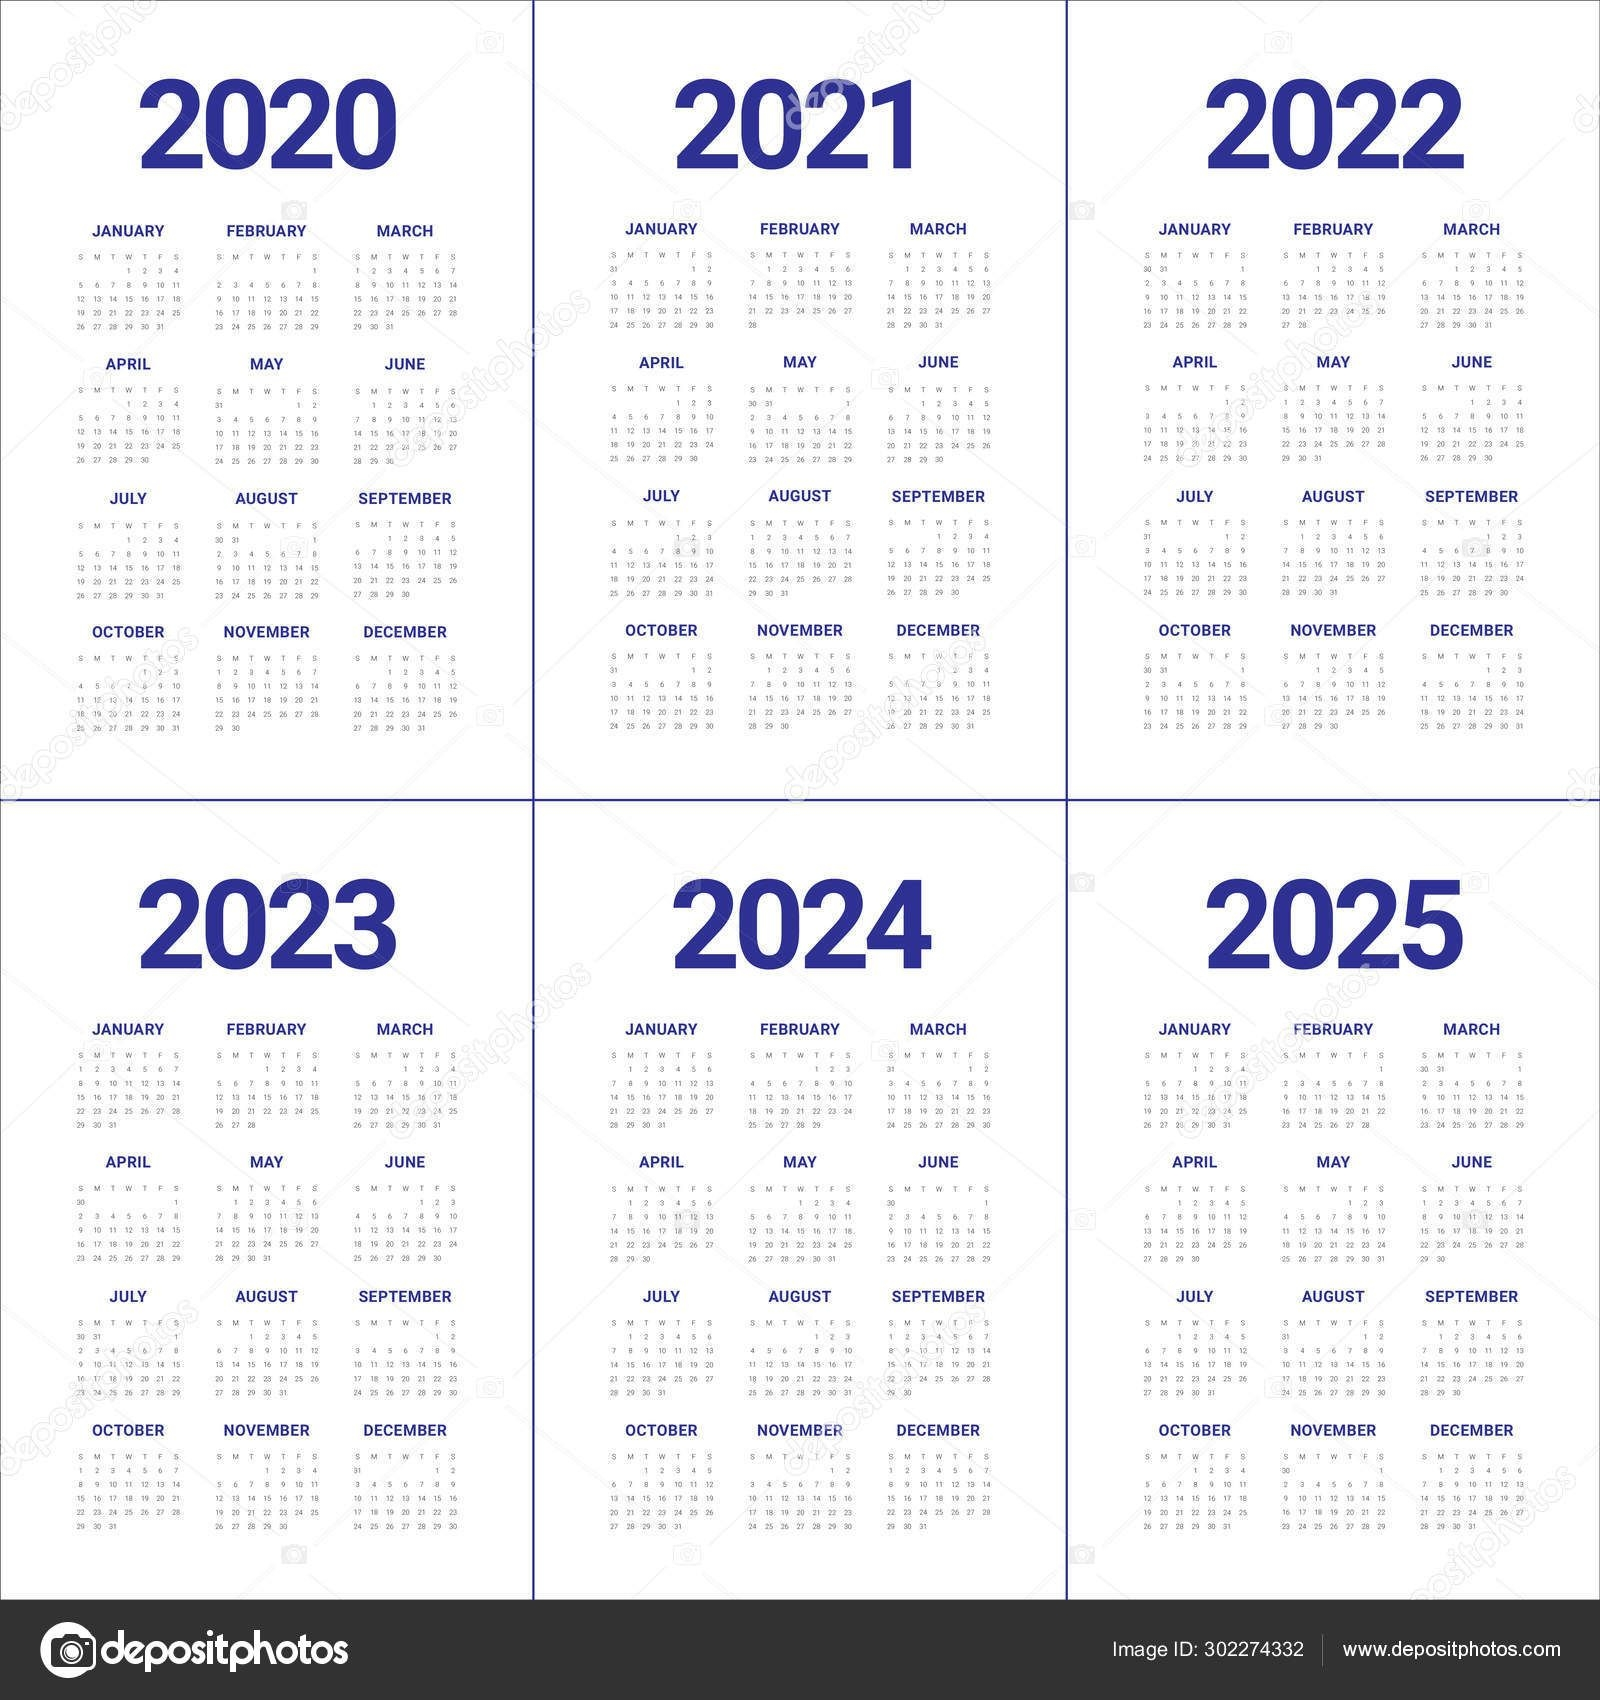 Year 2020 2021 2022 2023 2024 2025 Calendar Vector Design Templa 302274332